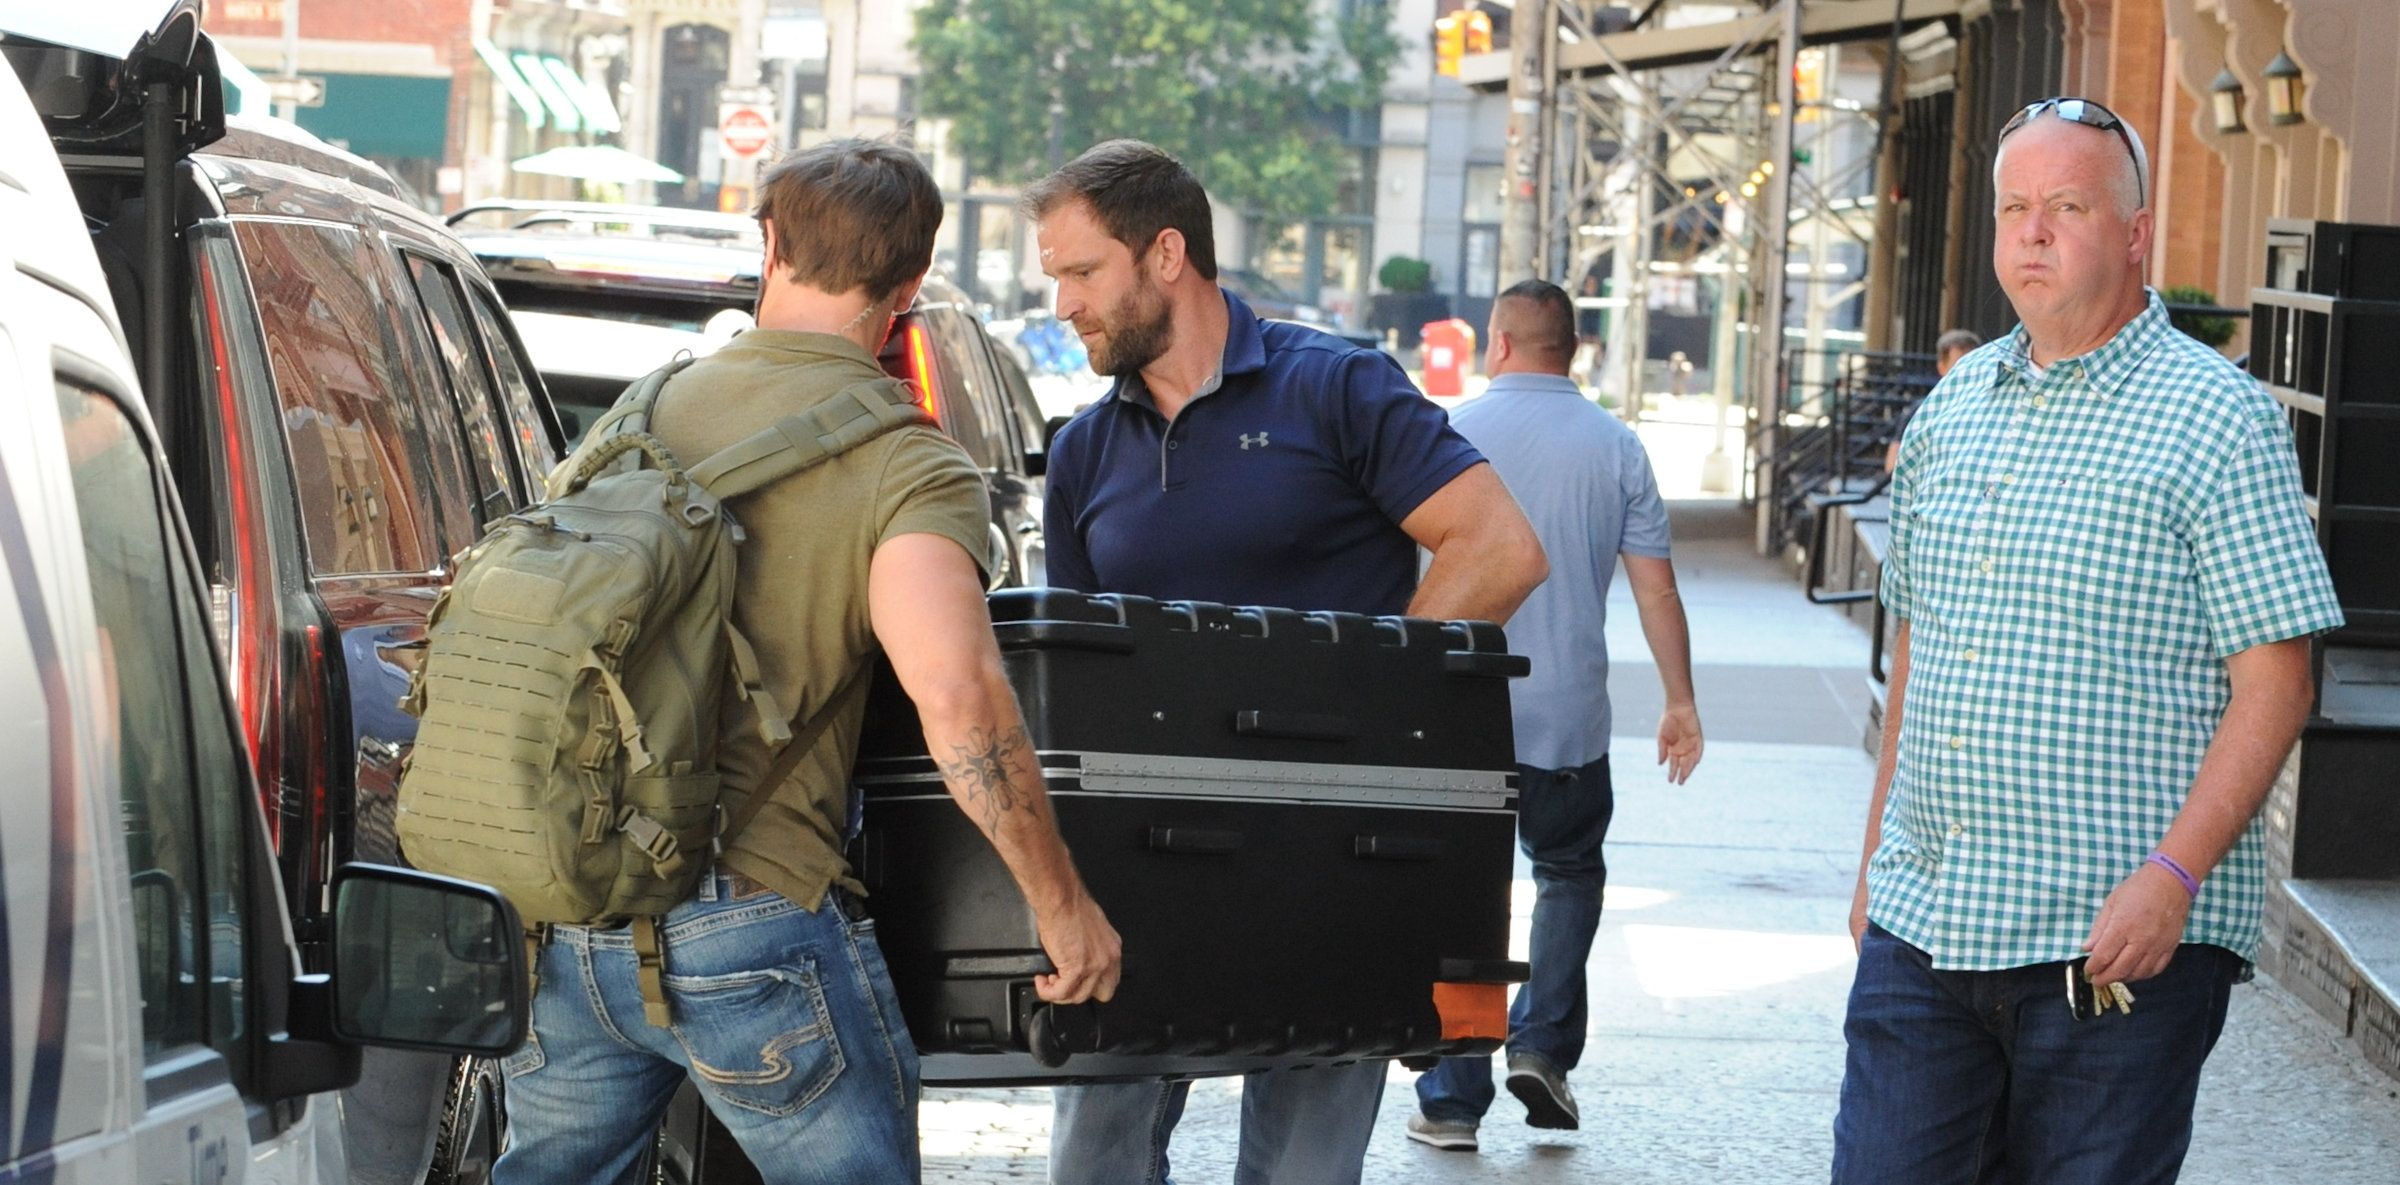 No, Taylor Swift Is Not Being Carried Around New York In A Suitcase